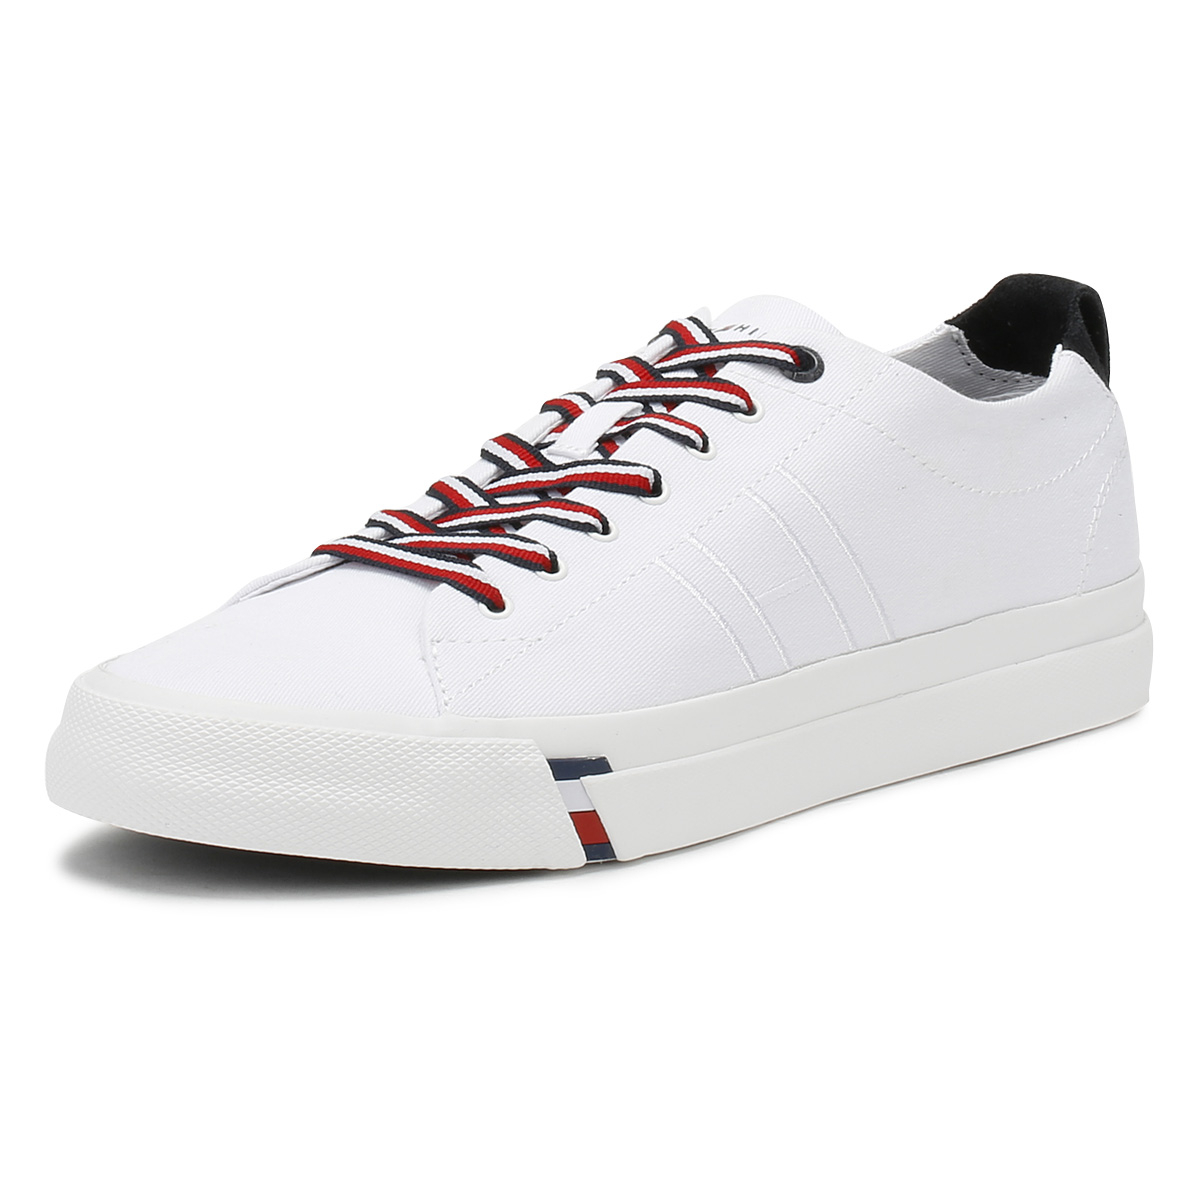 Tommy hilfiger mens white dino 1d trainers lace up sport casual tommy hilfiger mens white dino 1d trainers lace publicscrutiny Choice Image